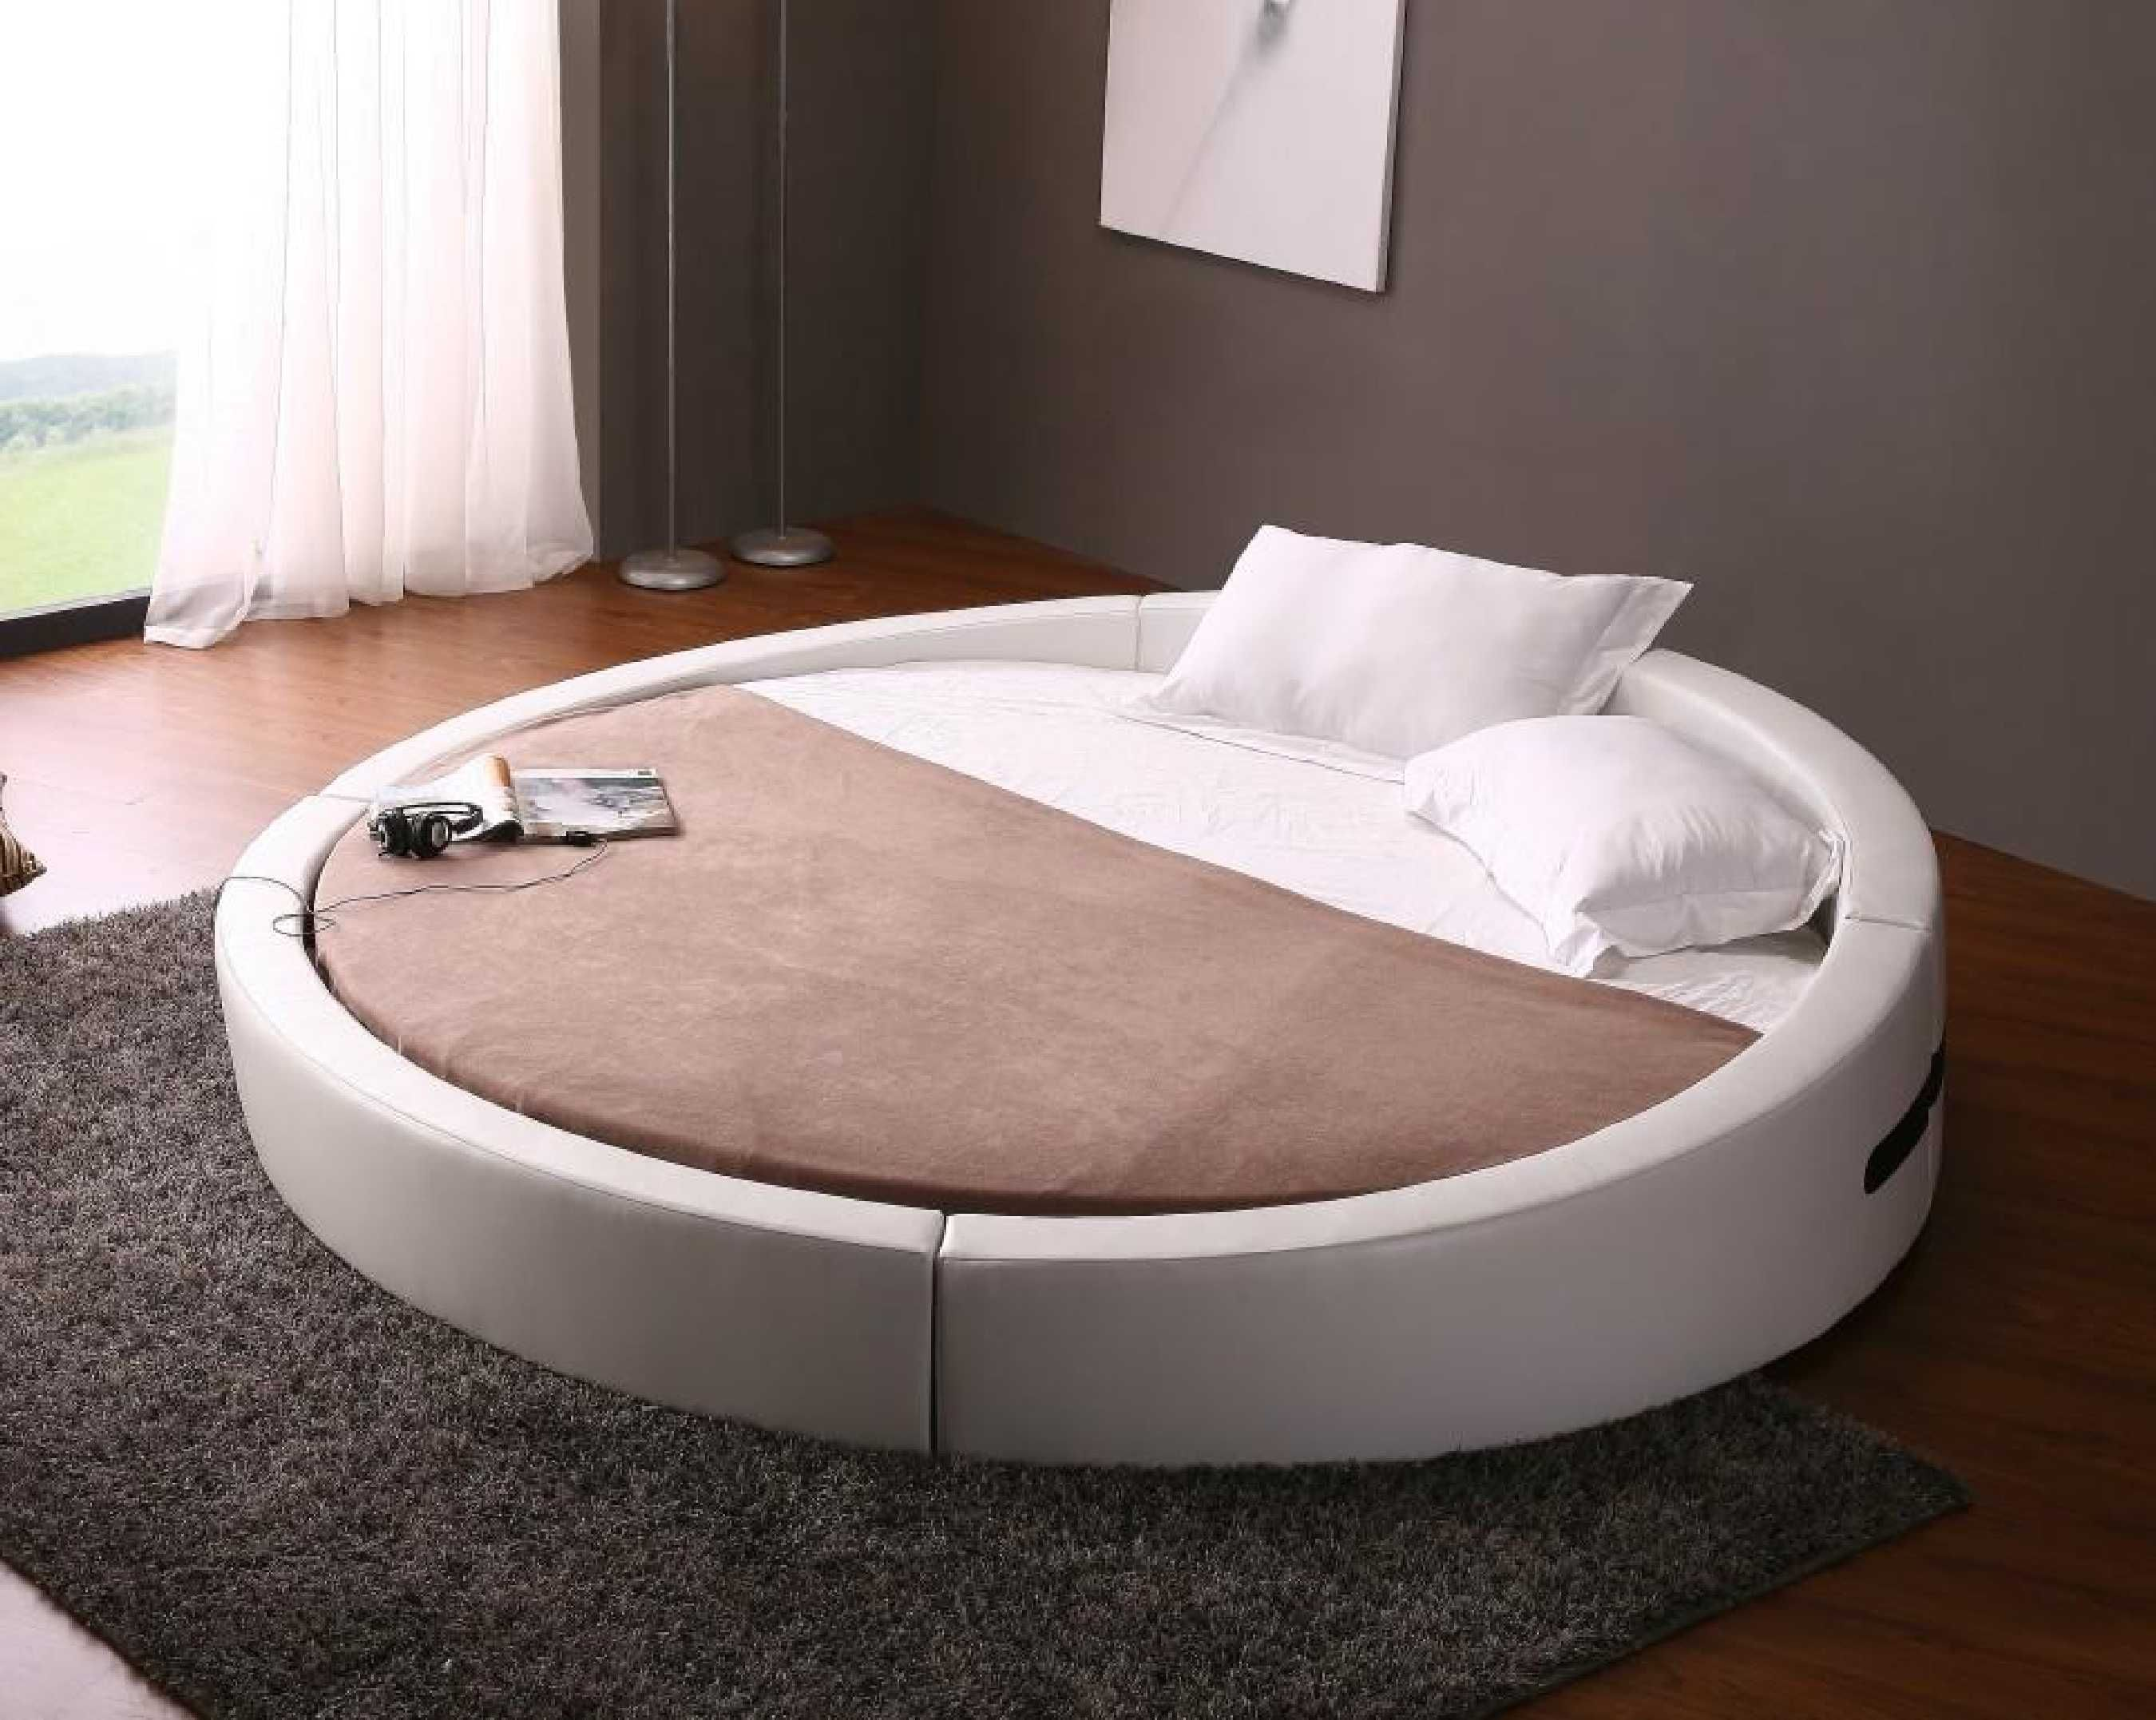 Cheap Round Beds Uk Jpg 2700 2154 Round Bed Pinterest